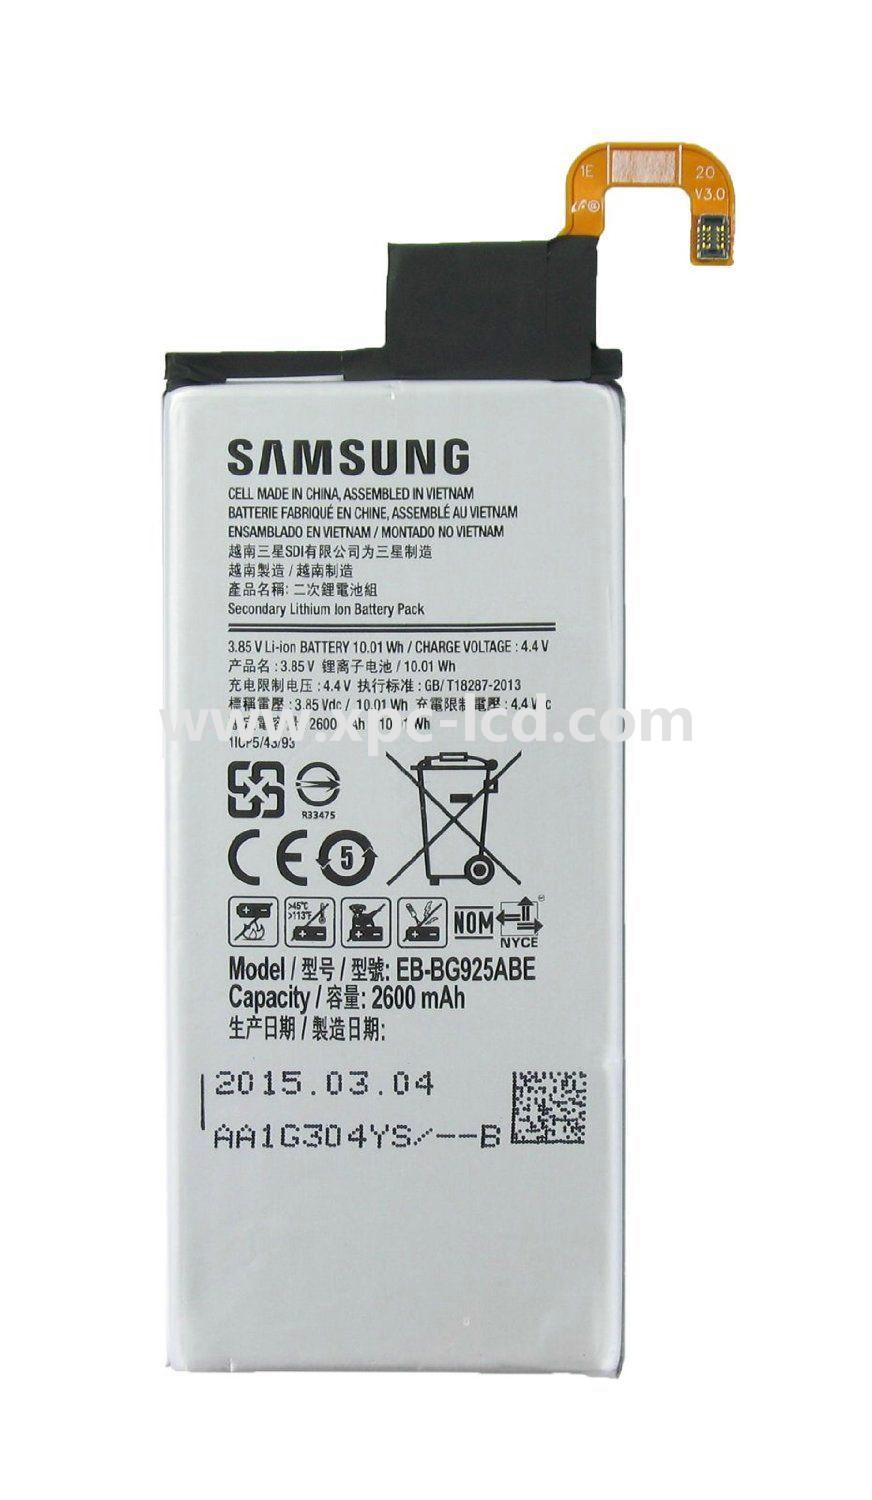 Mobile phone for Samsung Galaxy S6 edge Battery